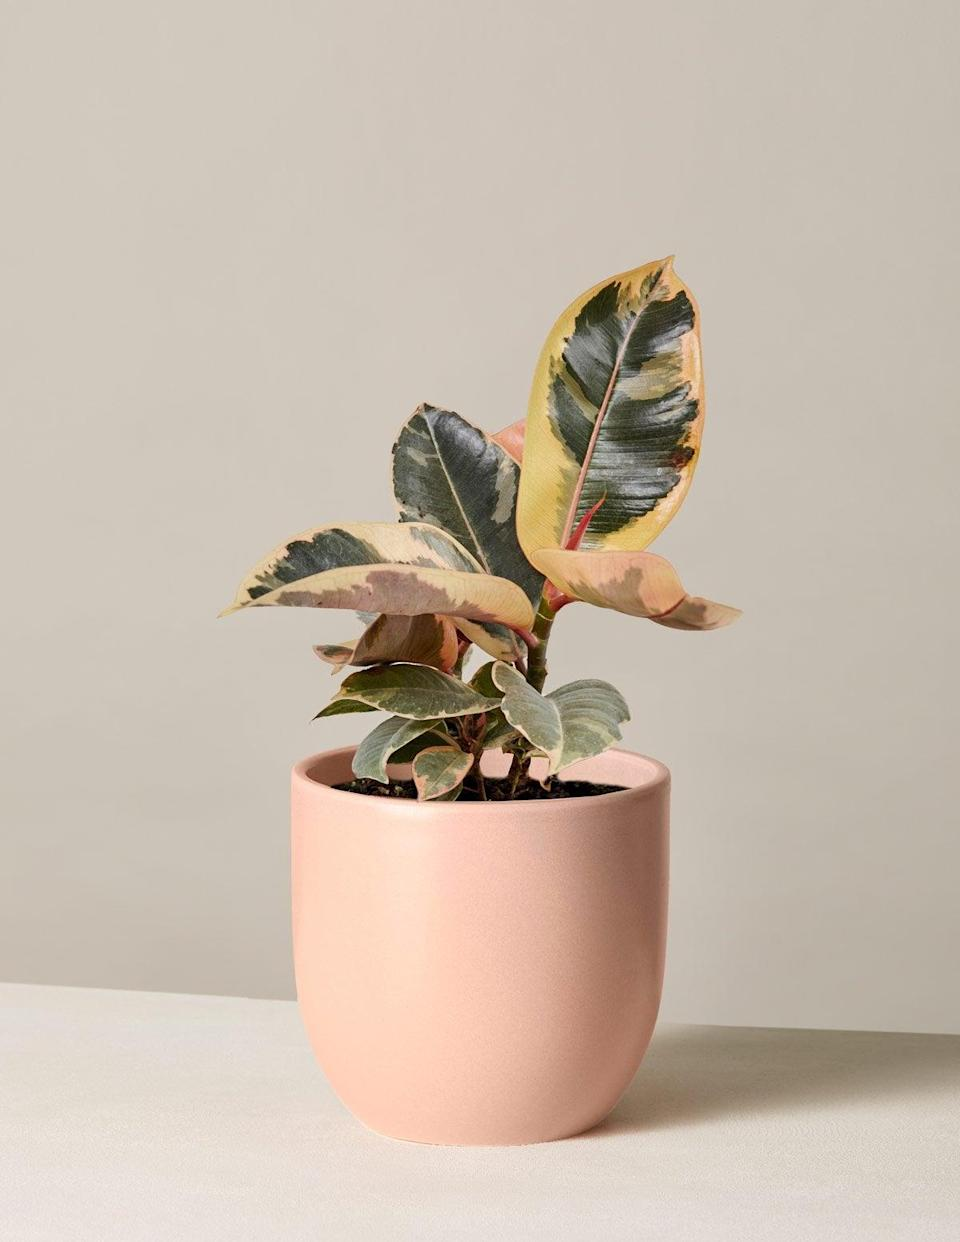 """<h2>Ficus</h2><br>A ficus can reduce mold and bacteria and remove formaldehyde in any room, per Bloomscape's Plant Mom. This plant variety is """"very tolerant of neglect and can be grown with very little experience,"""" she adds.<br><br><em>Shop</em> <strong><em><a href=""""http://thesill.com"""" rel=""""nofollow noopener"""" target=""""_blank"""" data-ylk=""""slk:The Sill"""" class=""""link rapid-noclick-resp"""">The Sill</a></em></strong> <br><br><strong>The Sill</strong> Ficus Tineke, $, available at <a href=""""https://go.skimresources.com/?id=30283X879131&url=https%3A%2F%2Fwww.thesill.com%2Fproducts%2Fficus-tineke"""" rel=""""nofollow noopener"""" target=""""_blank"""" data-ylk=""""slk:The Sill"""" class=""""link rapid-noclick-resp"""">The Sill</a>"""